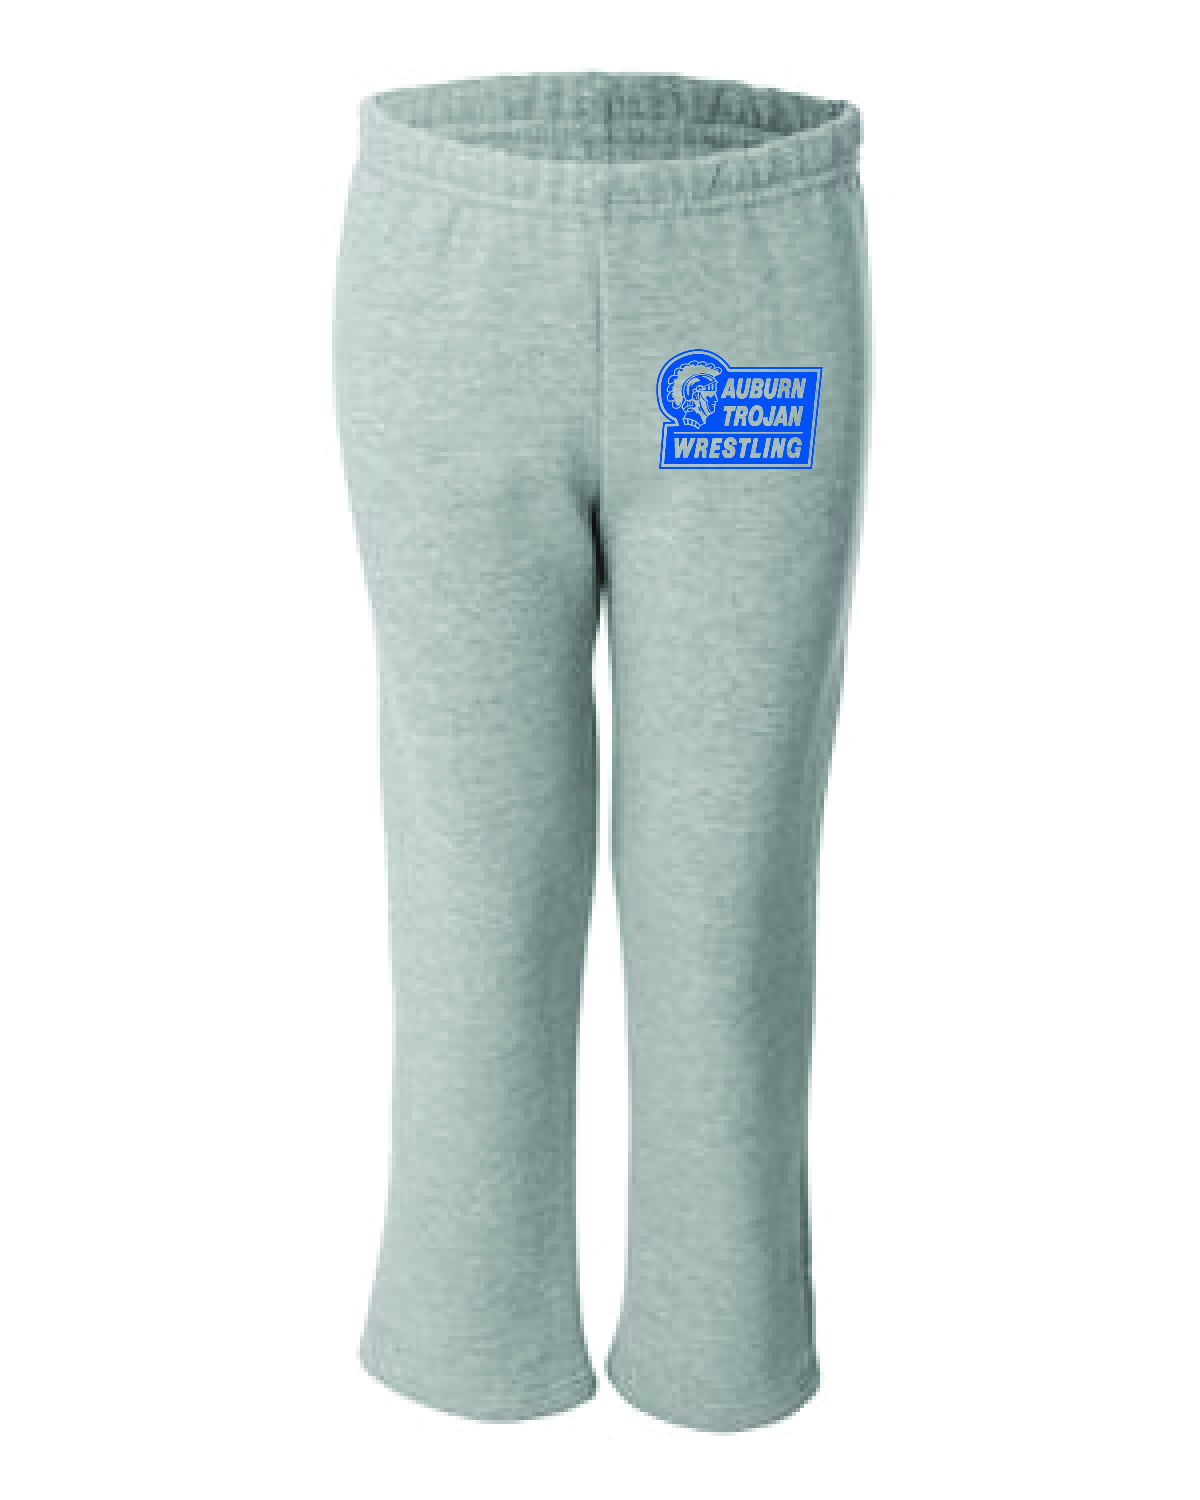 WRESTLING Gildan - Heavy Blend™ Youth Open-Bottom Sweatpants  (YOUTH GRAY)